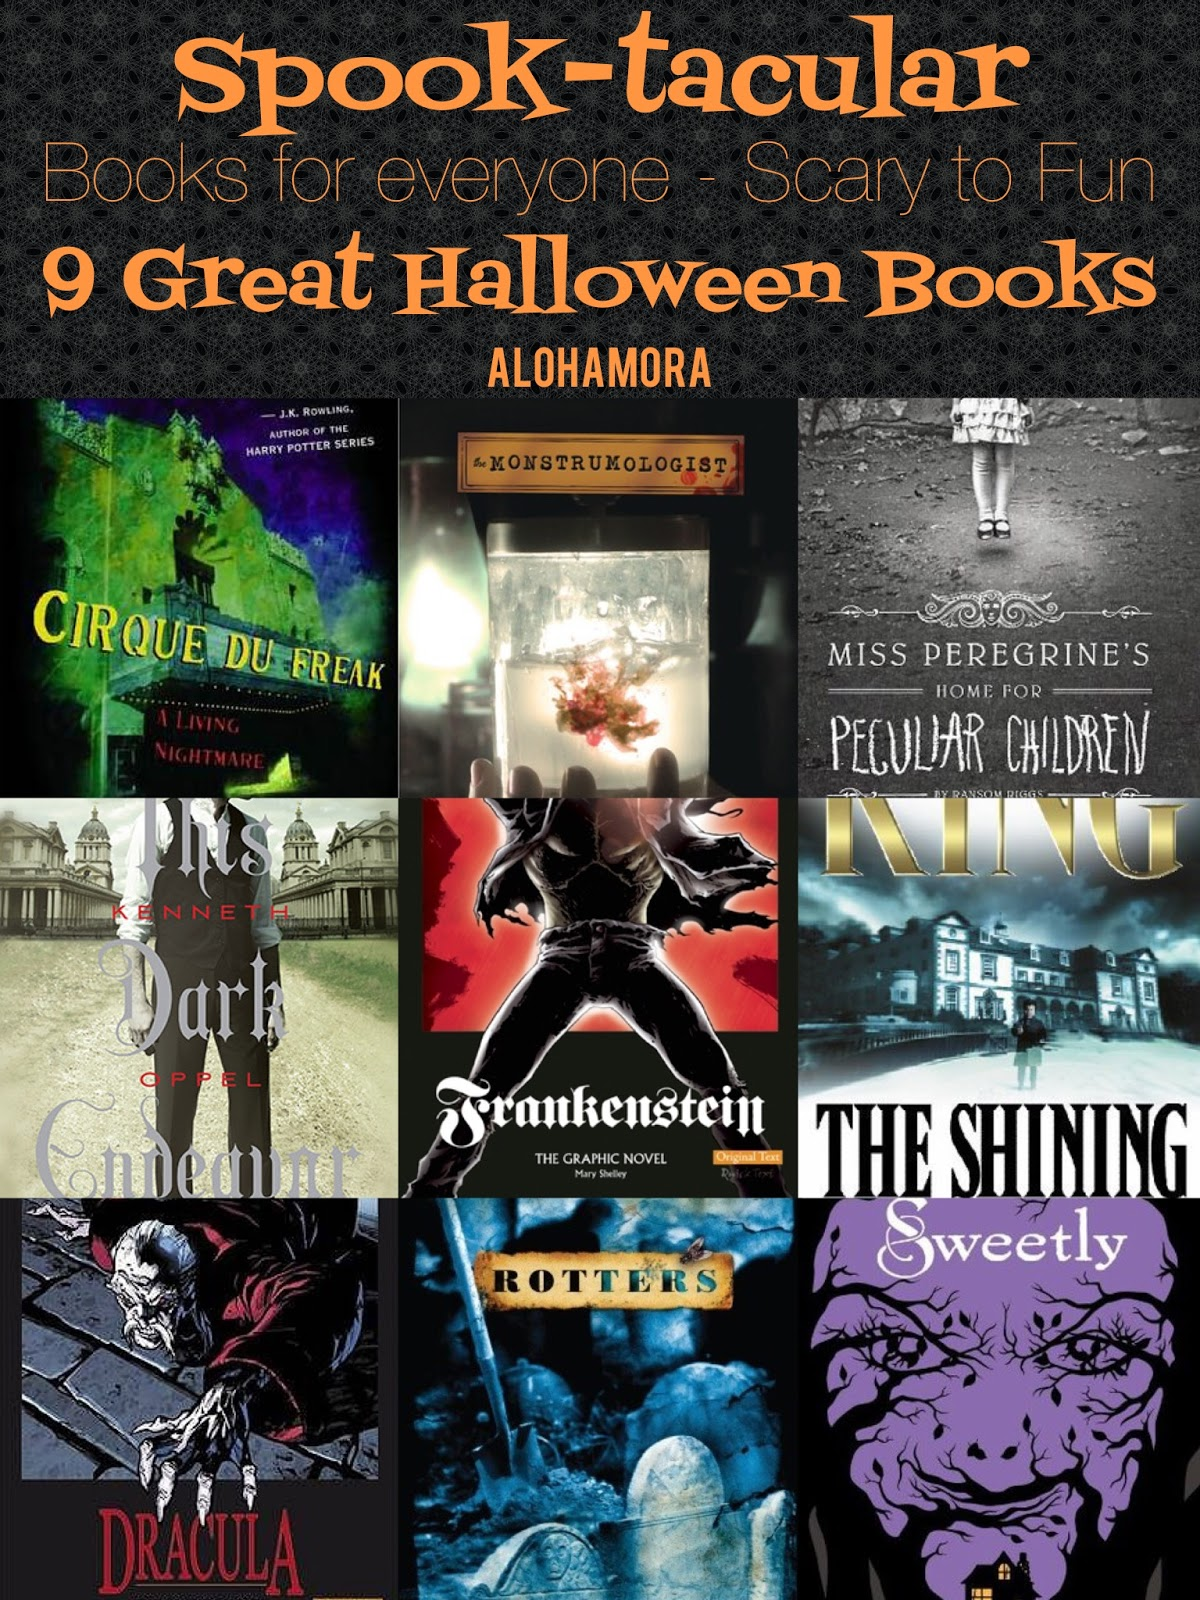 Spook-tacular books for everyone.  A book list of 9 Great Halloween Books for Middle School, High School, and Adults.  There's books that are scary, horror, suspense, creepy, frightening, and then there are novels with monsters, but great fun.  All the books are well written, and boys and girls alike will LOVE these reads.  Graphic Novels of a couple Classics are included b/c they are great! reads as well. Alohamora Open a Book http://alohamoraopenabook.blogspot.com/